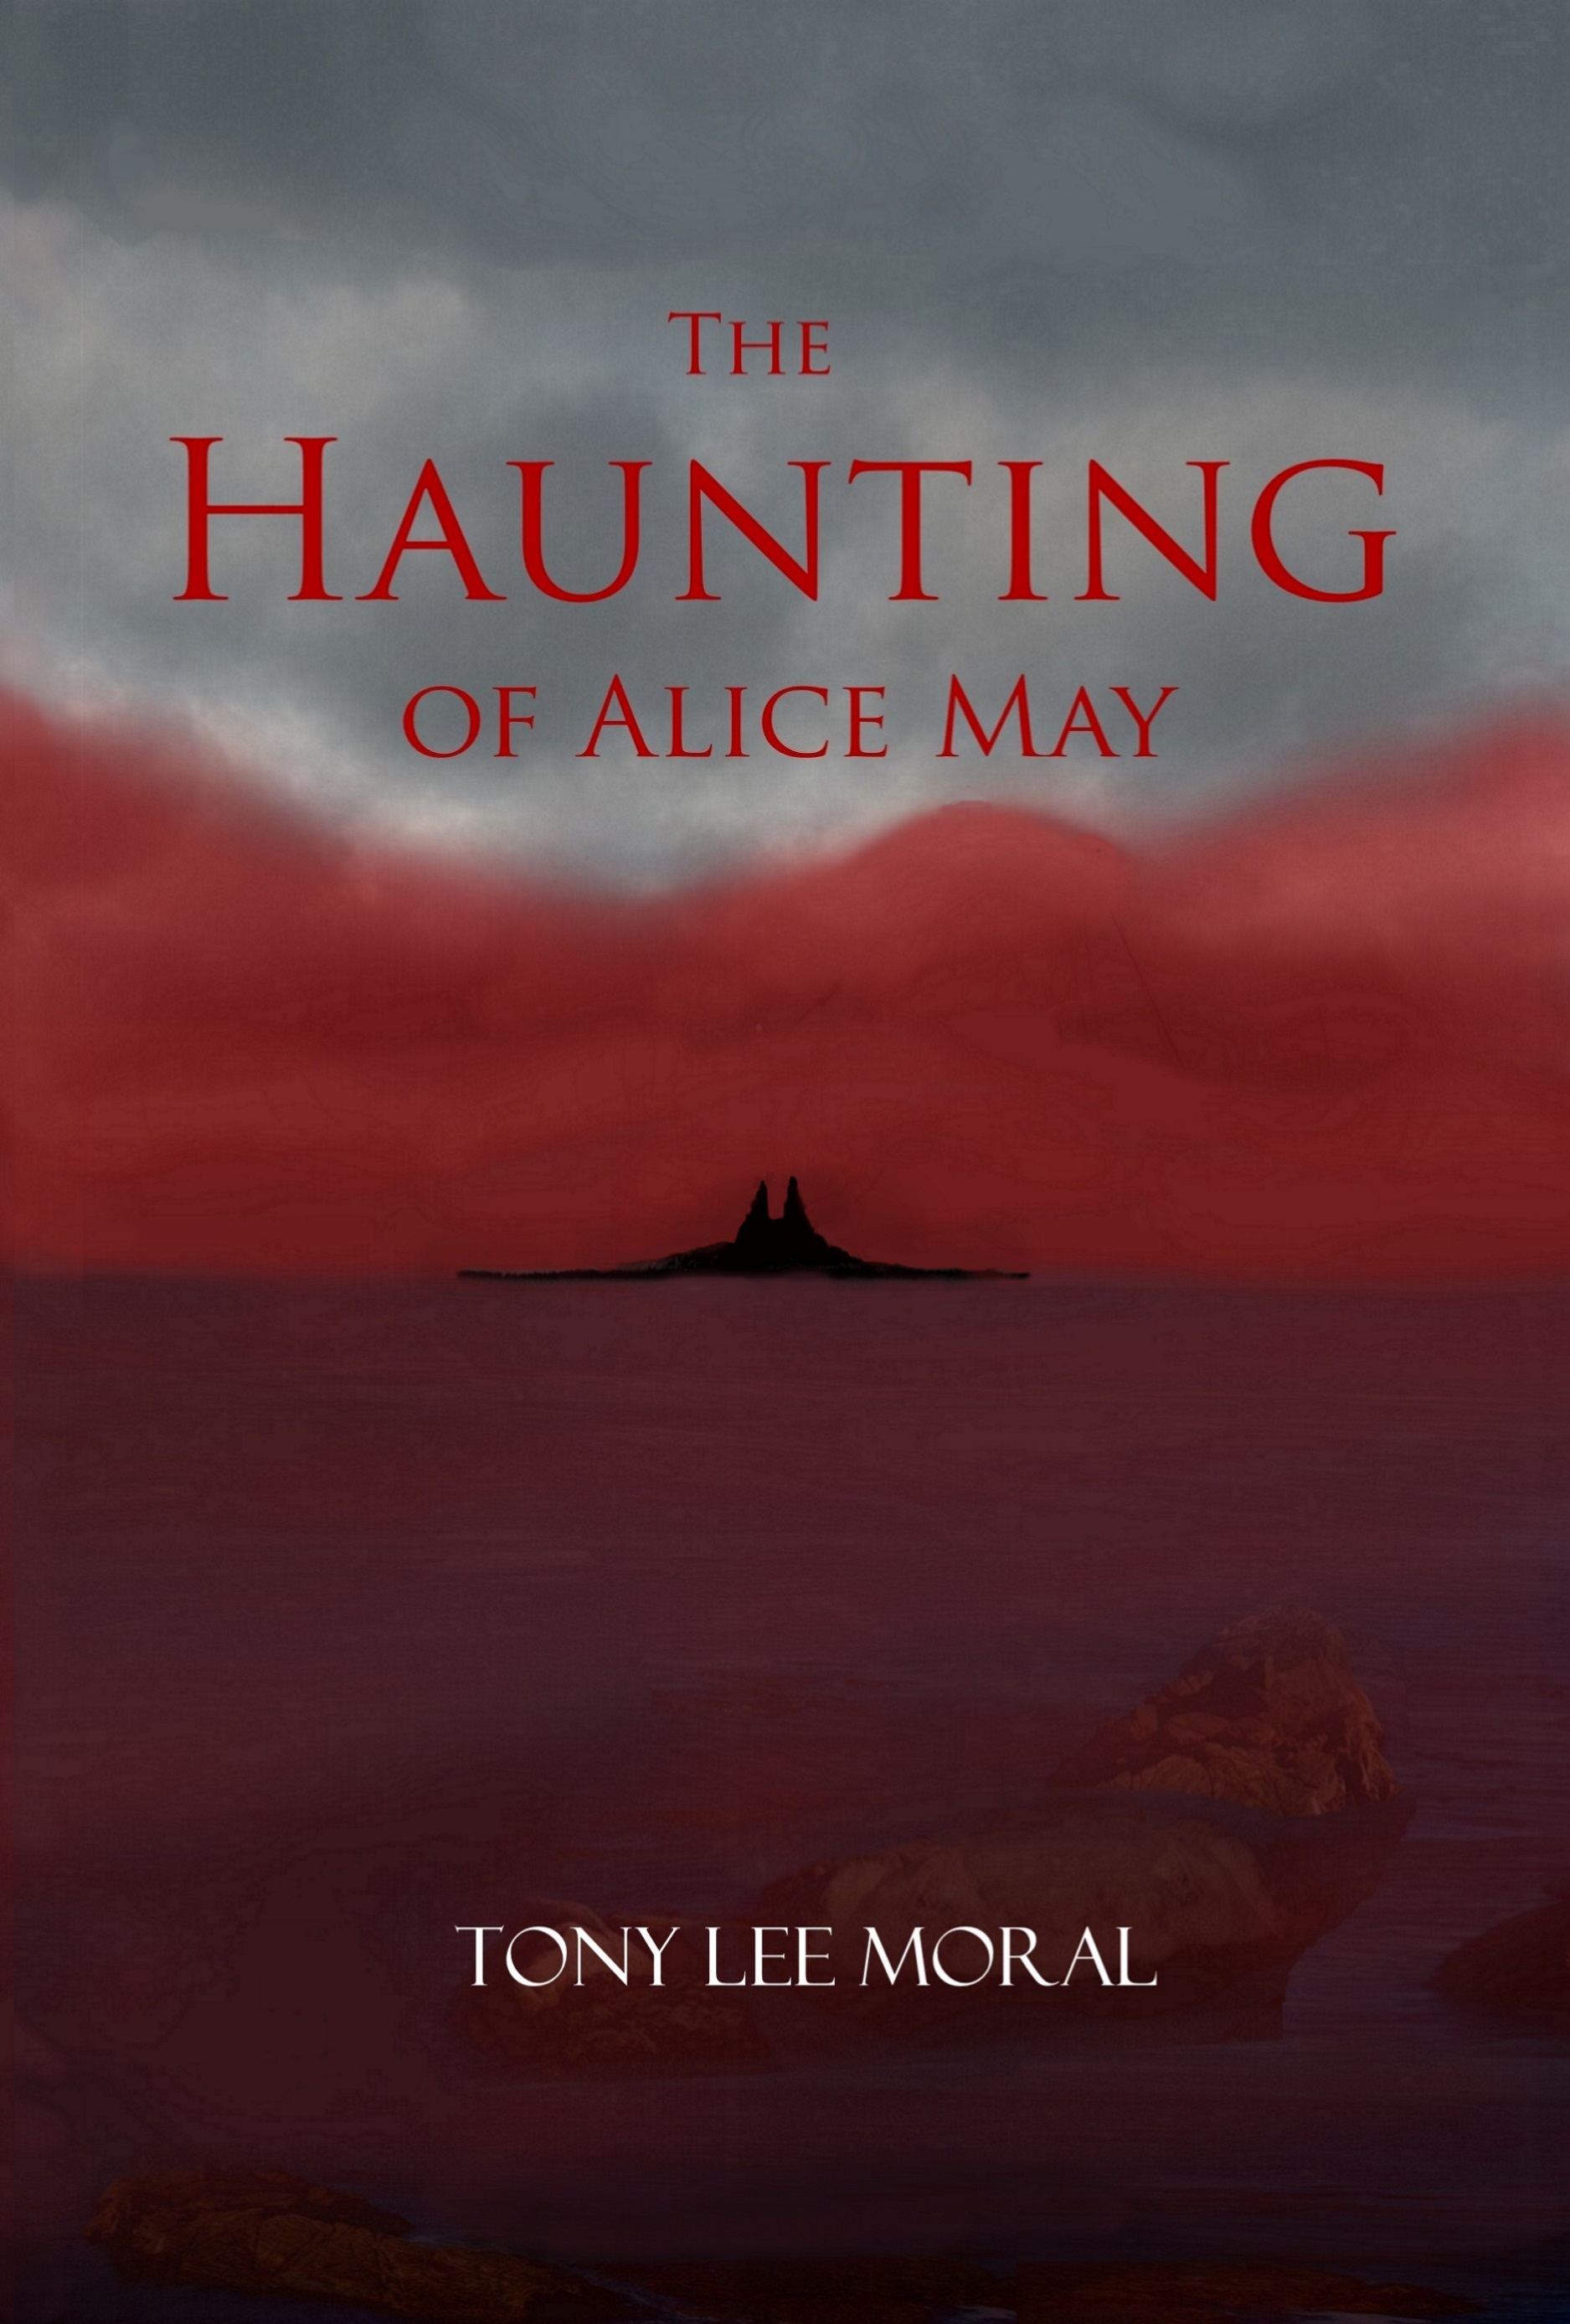 """The Haunting of Alice May by Tony Lee Moral Cover reveal   <a href=""""https://Alternative-Read.com""""> Alternative-Read.com</a>"""